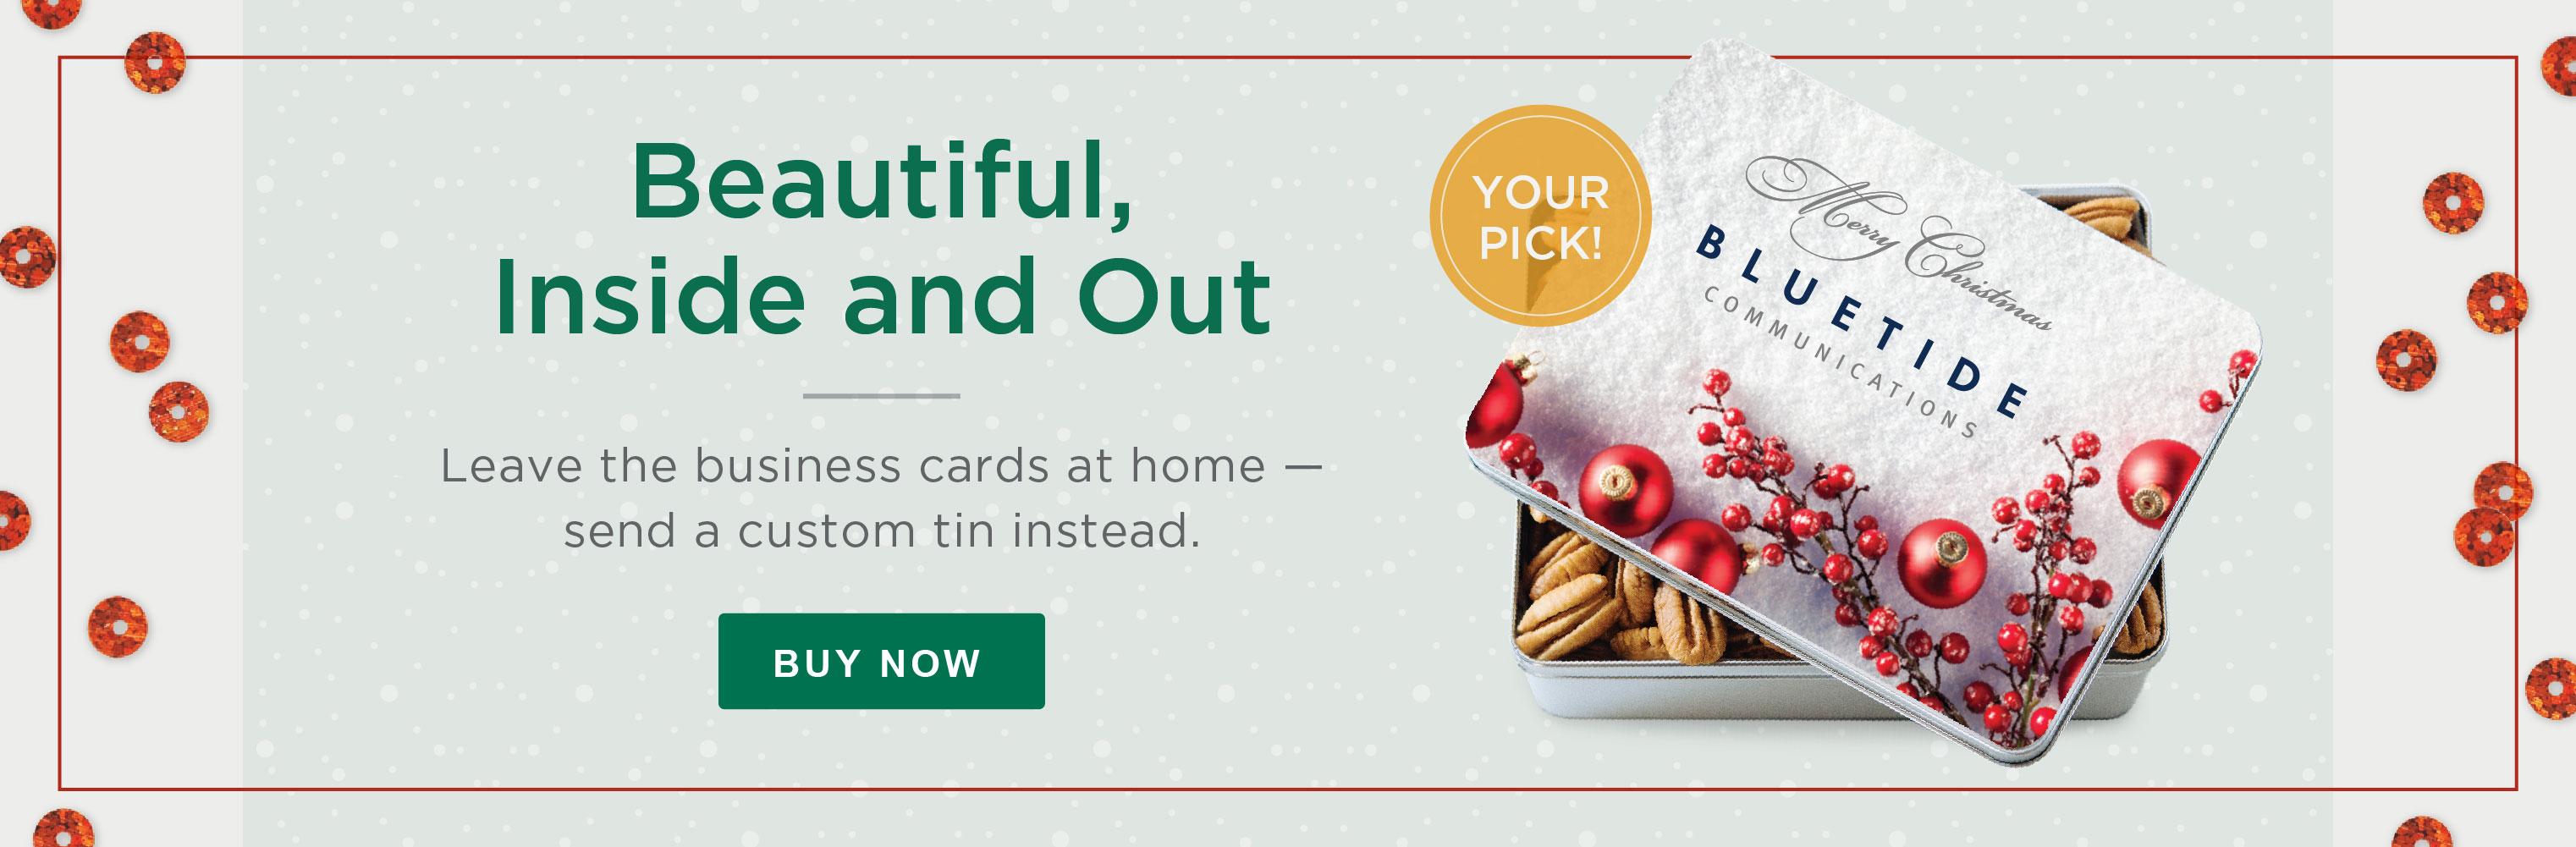 Beautiful, Inside and Out. SLeave the business cards at home - send a custom tin instead.  SBuy Now»